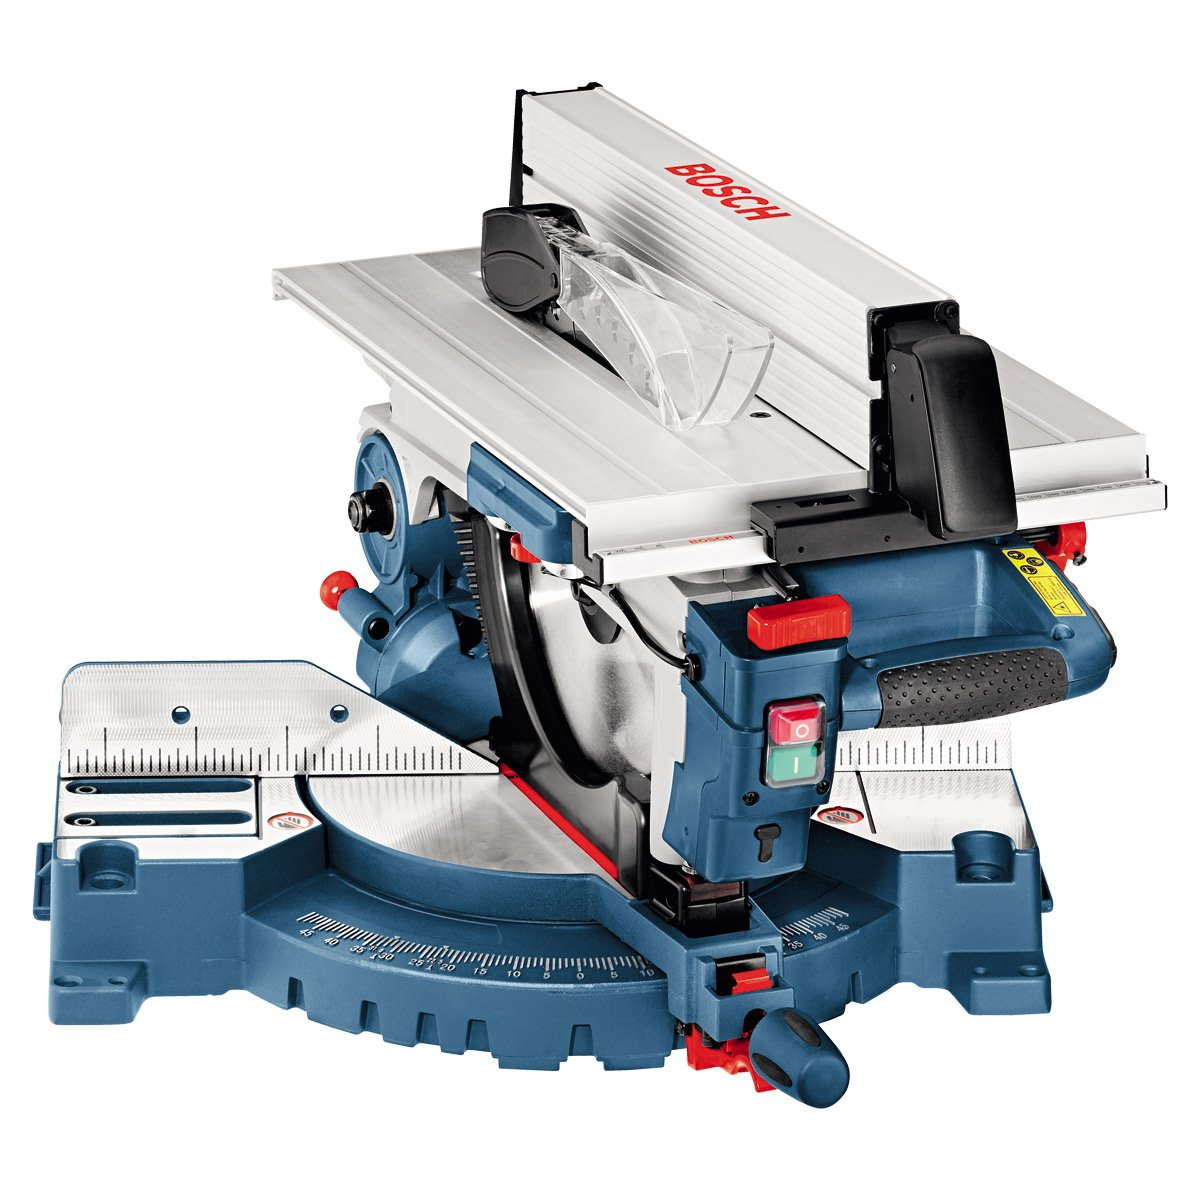 Bosch Gtm12 Combination Mitre Table Saw 240v Only Product